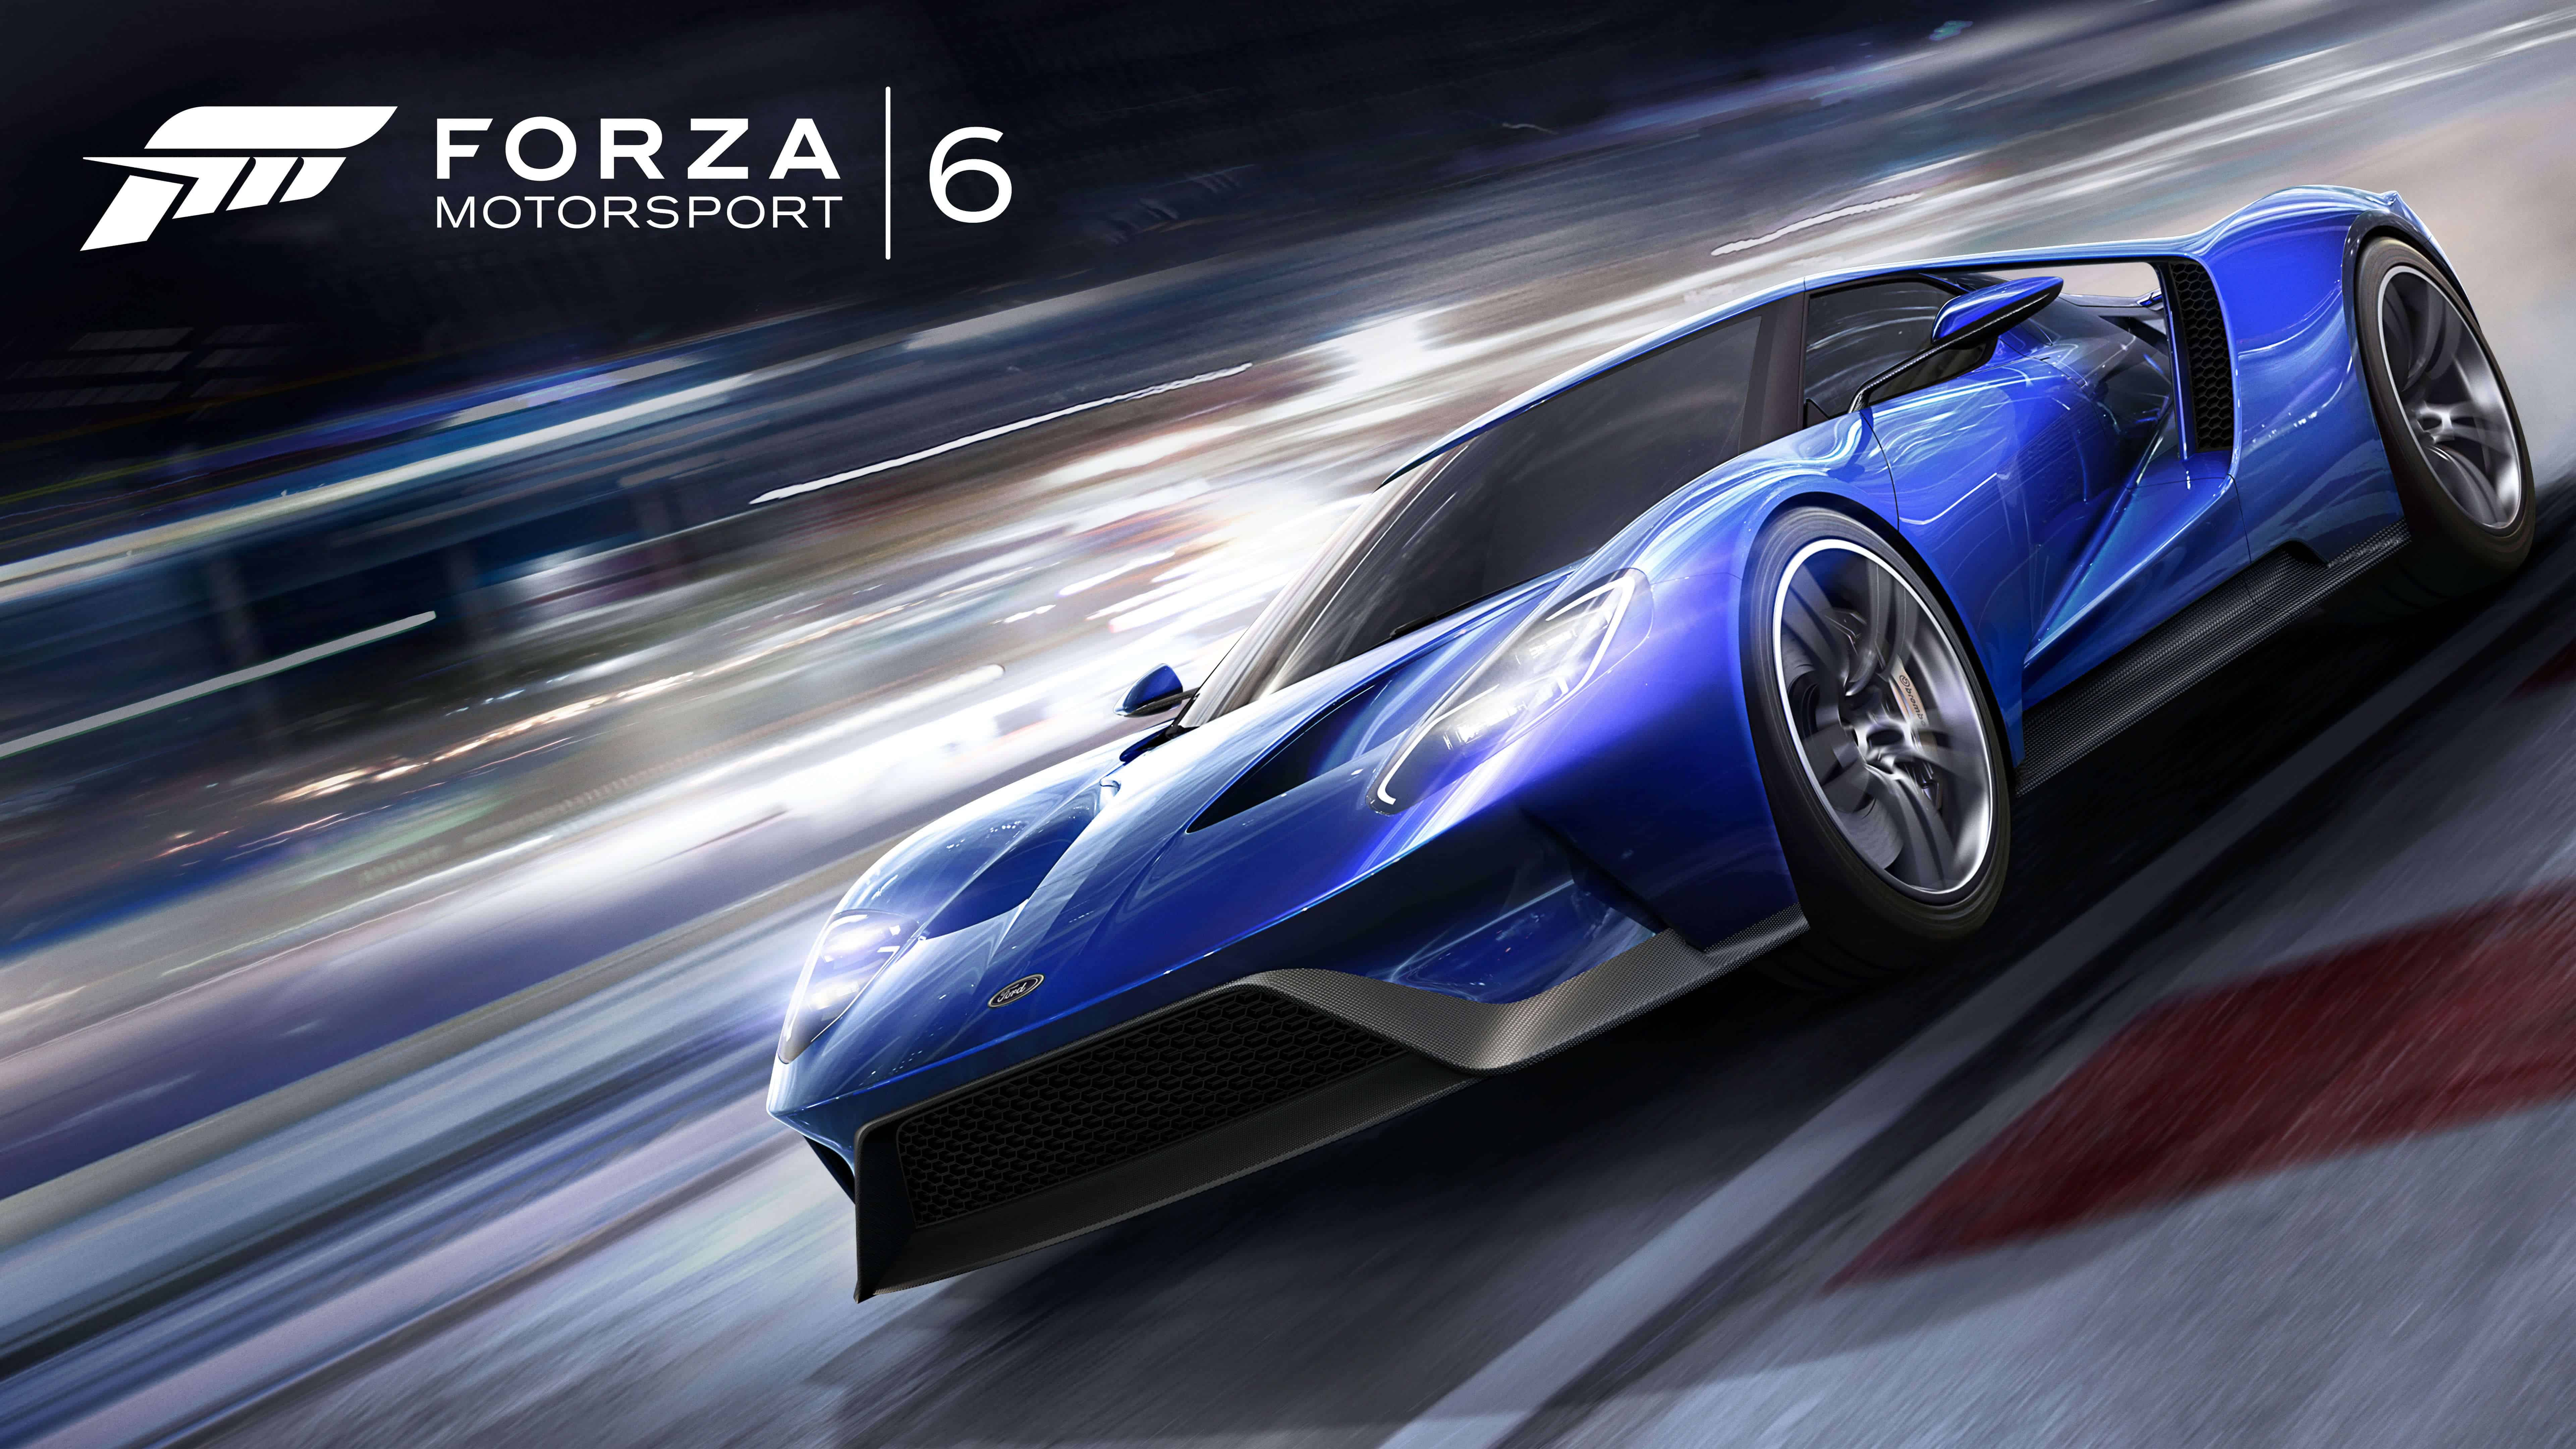 forza motorsport 6 ford gt uhd 8k wallpaper | pixelz